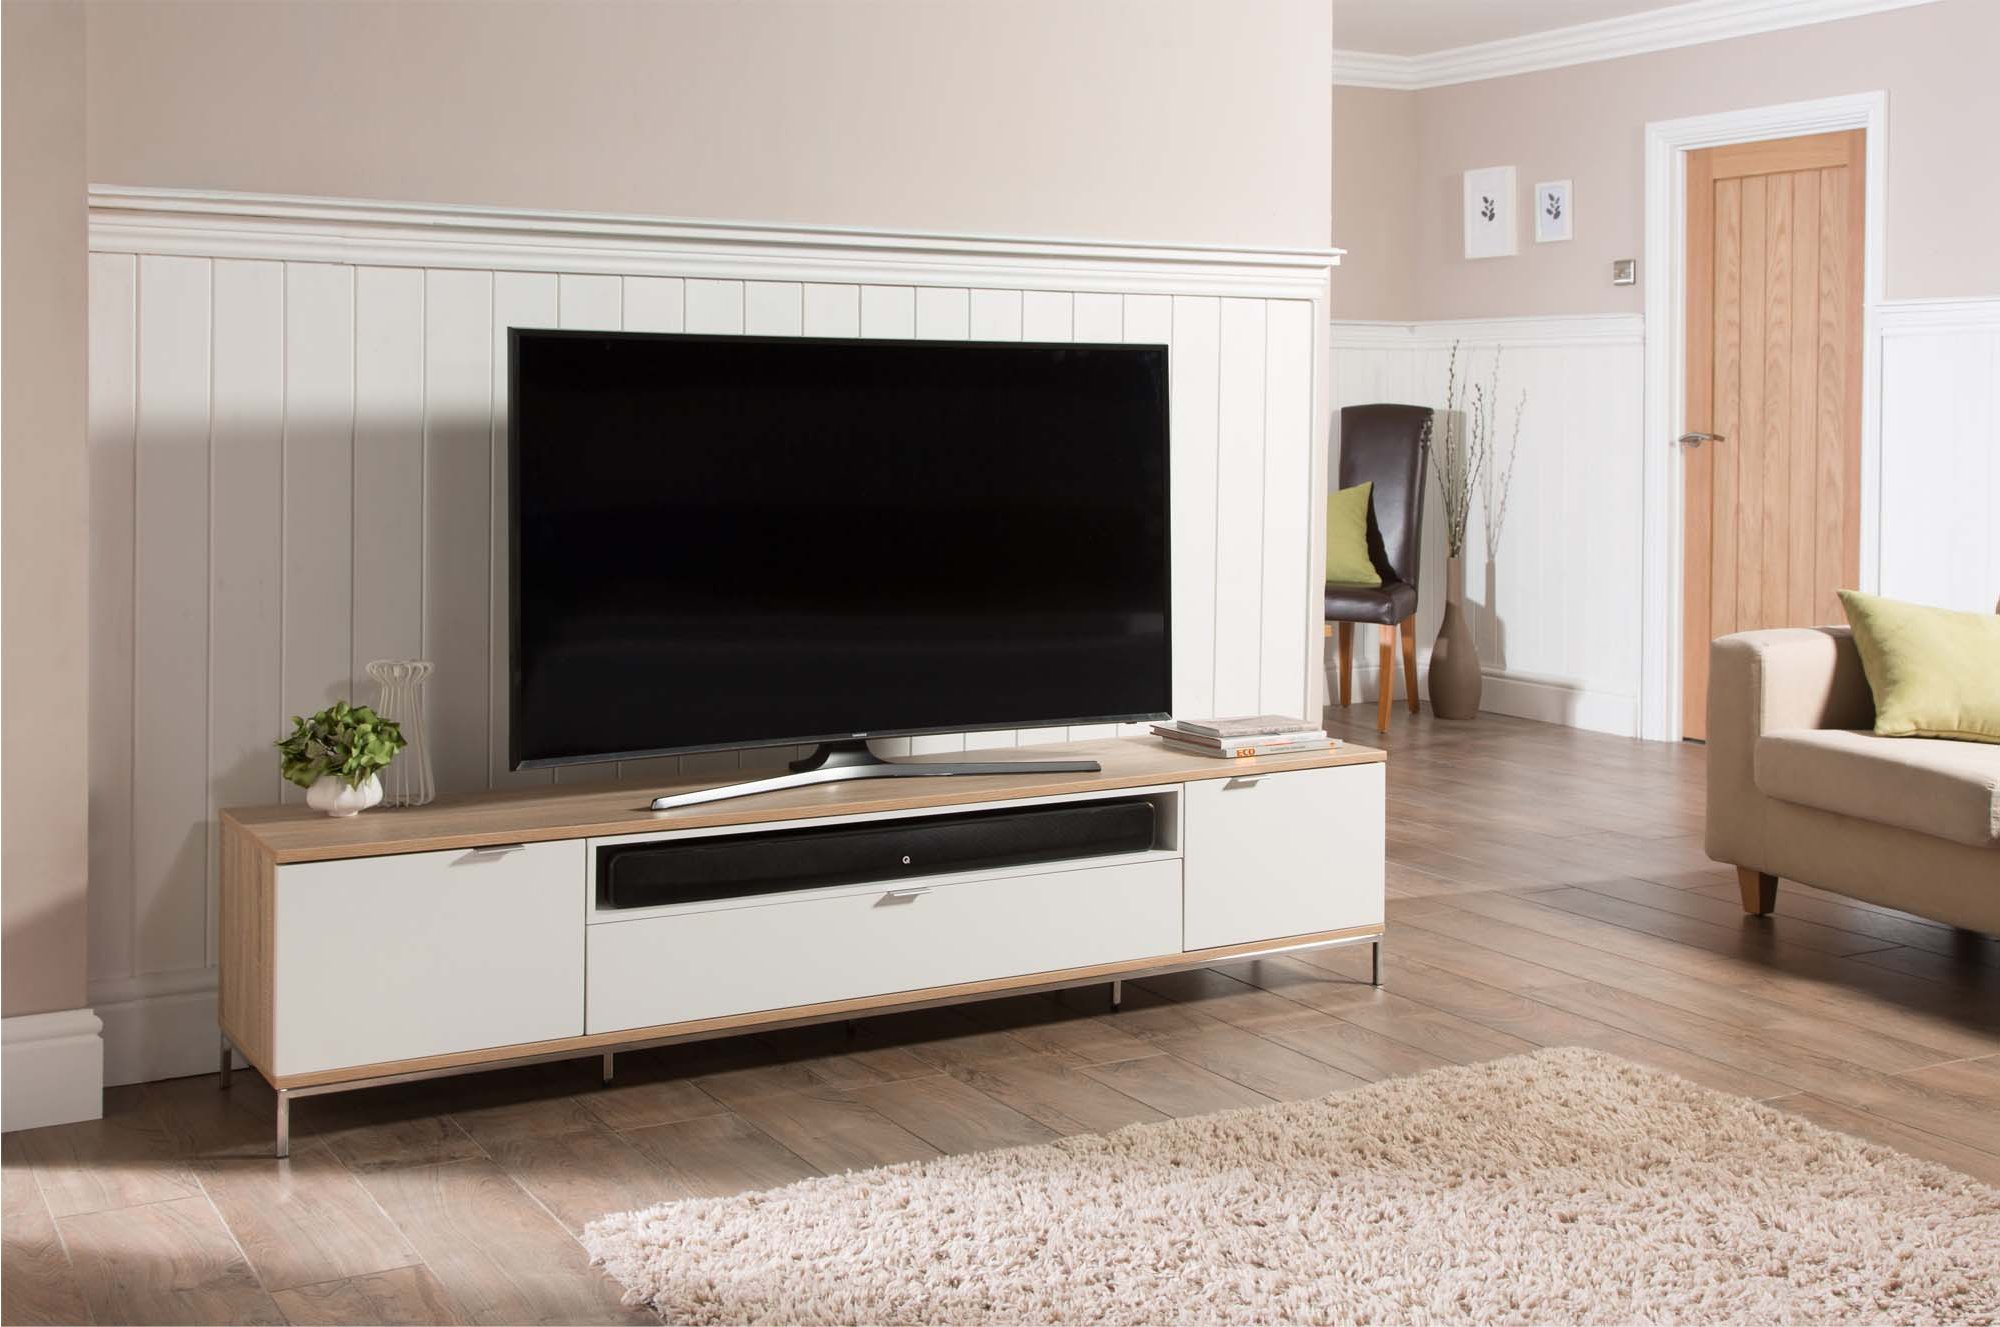 alphason adch2000 wht tv stands. Black Bedroom Furniture Sets. Home Design Ideas